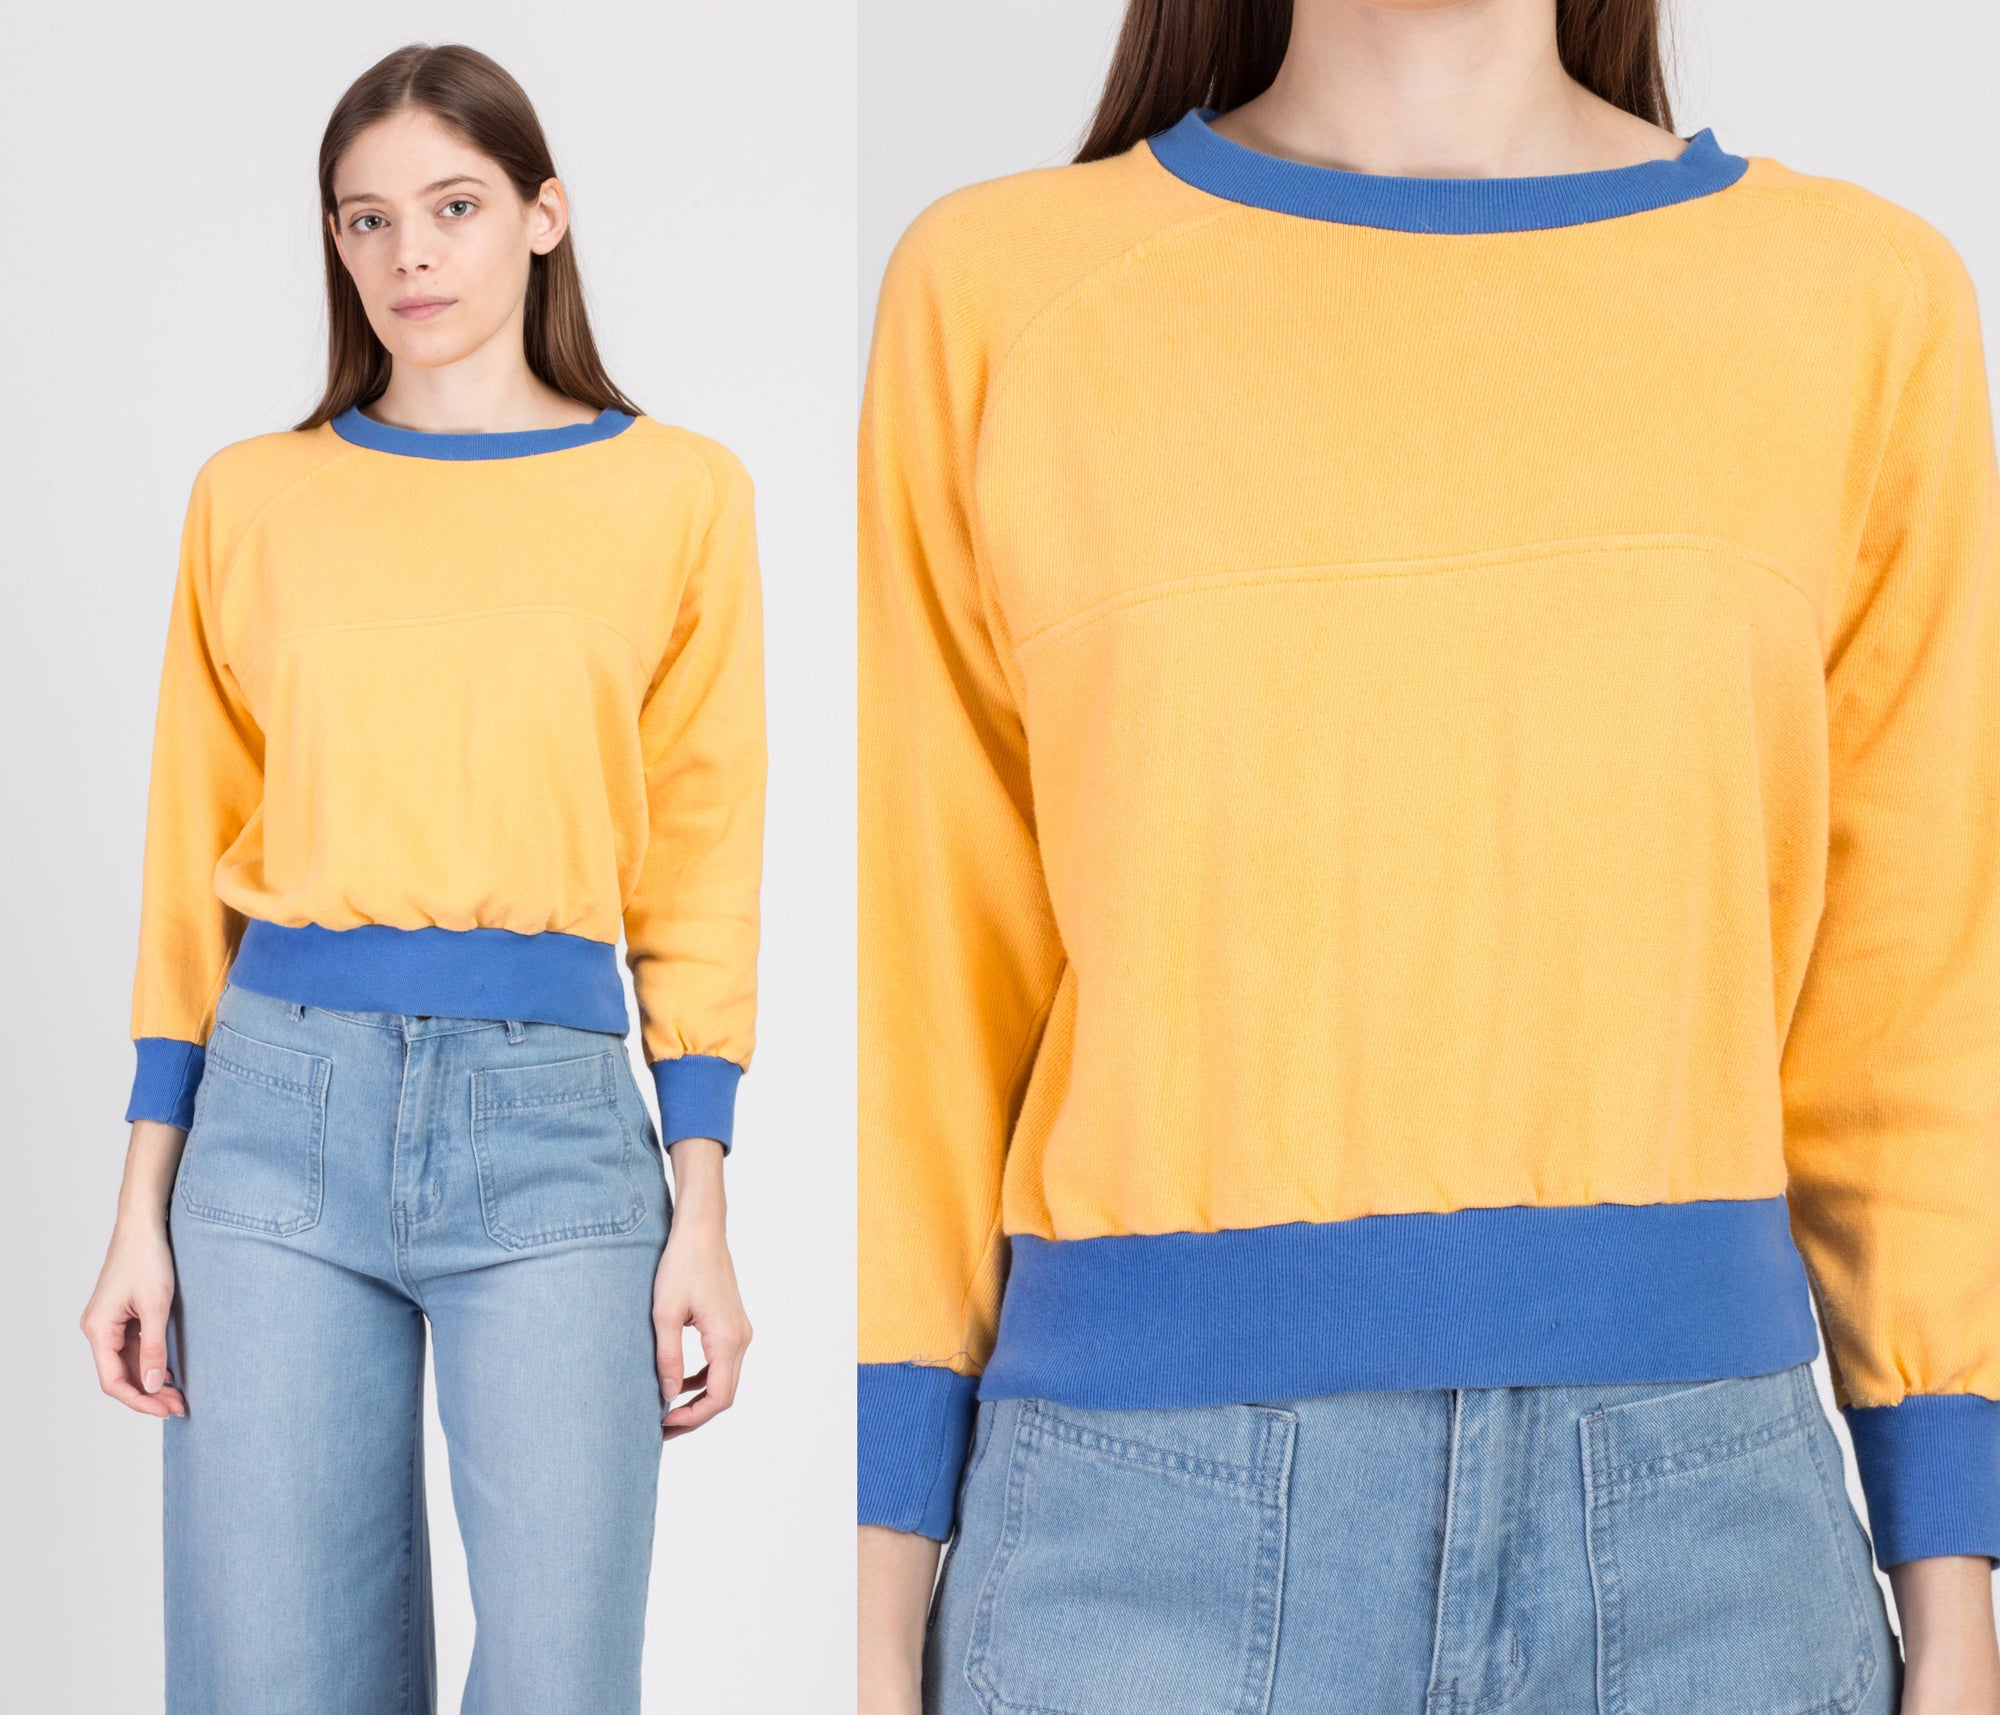 80s Yellow & Blue Cropped Sweatshirt - Small